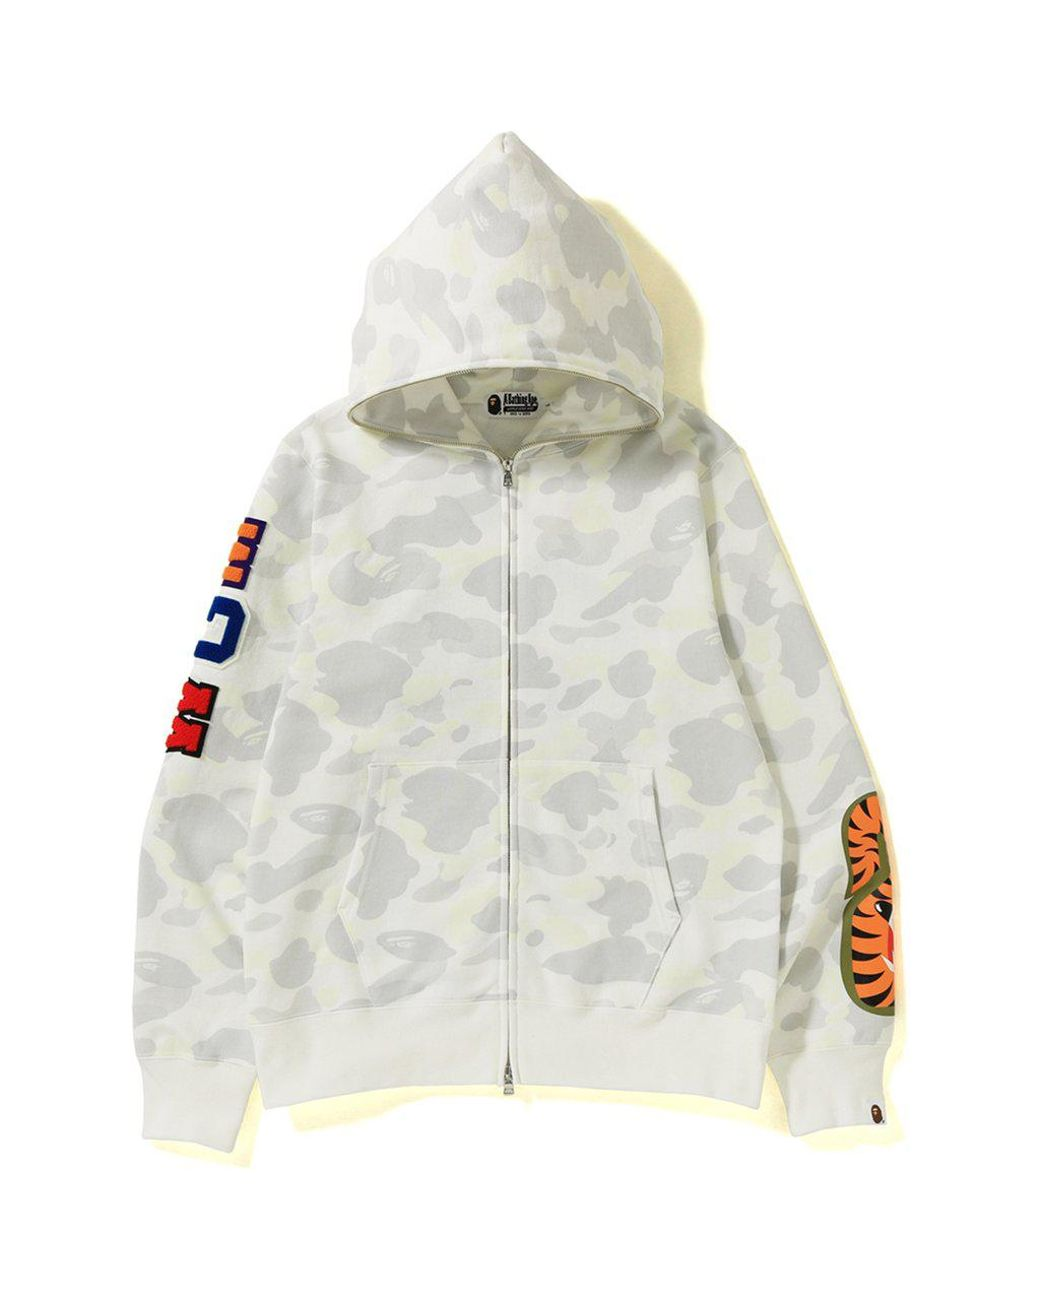 53e5a5d14464 Long-Touch to Zoom. A Bathing Ape - City Camo Embroidery Shark Full Zip  Hoodie ...